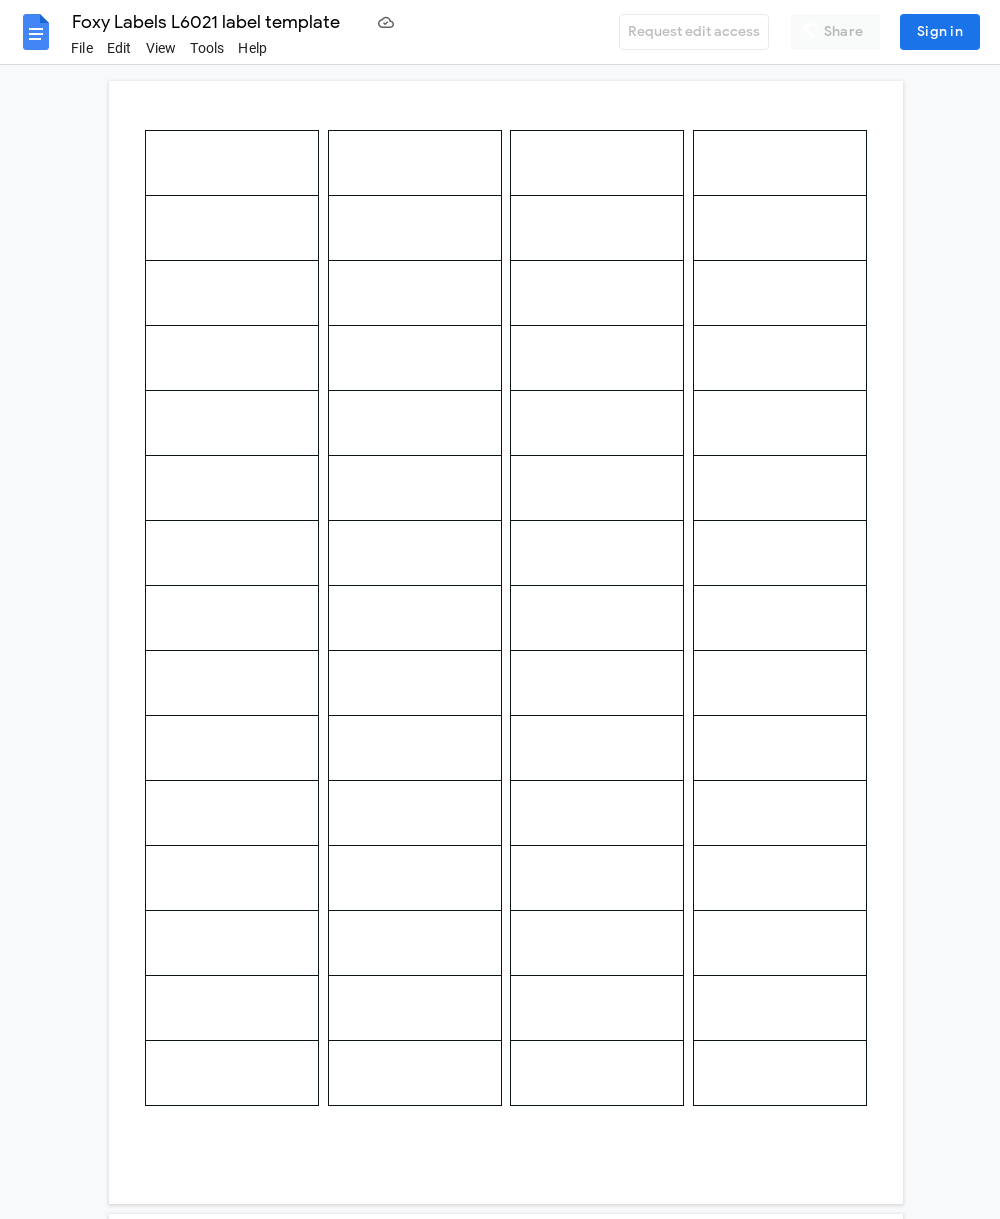 Avery L6021 Label Template